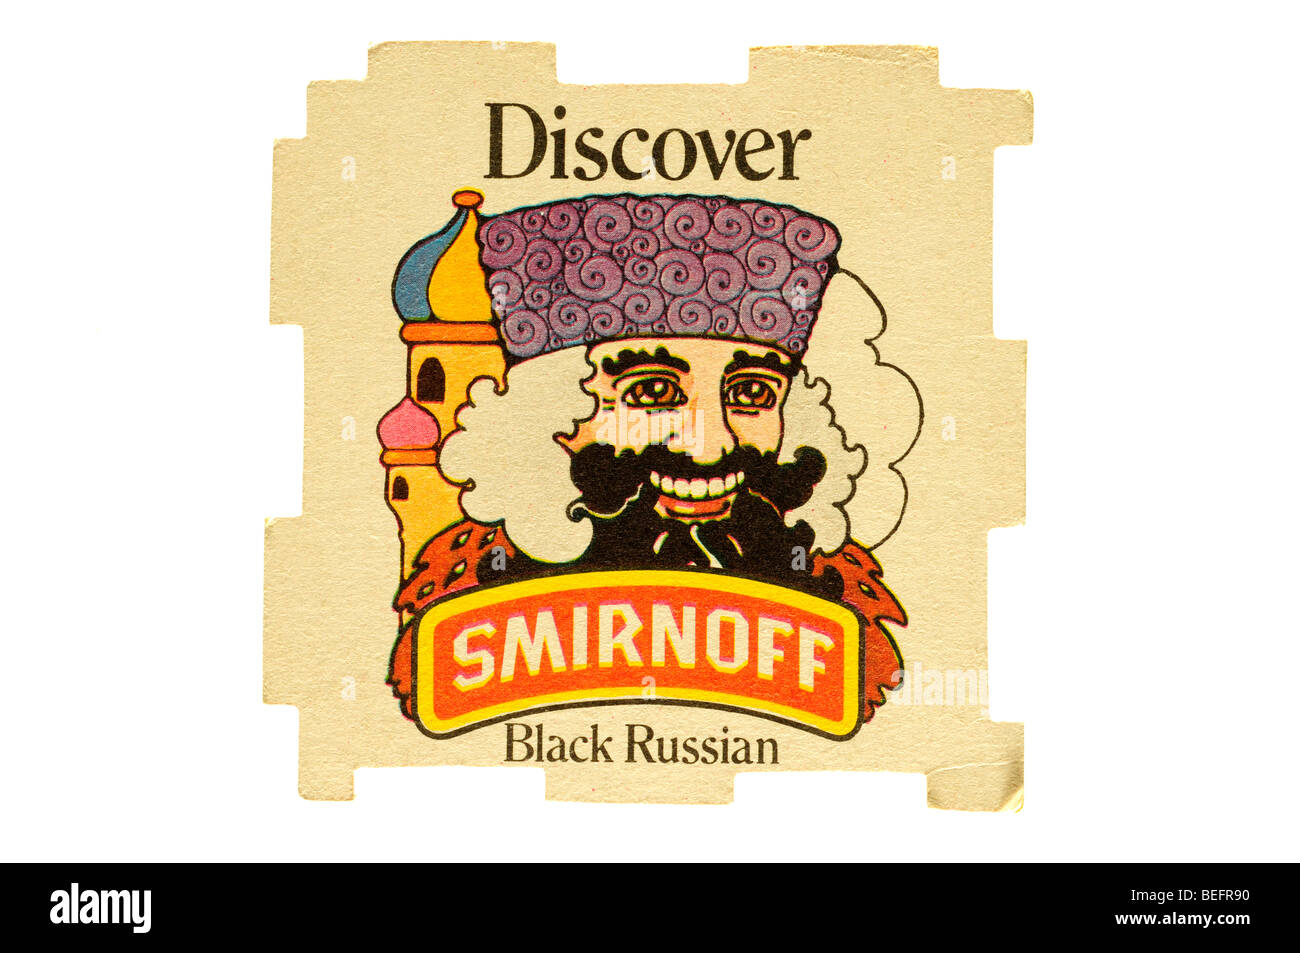 discover smirnoff black russian - Stock Image